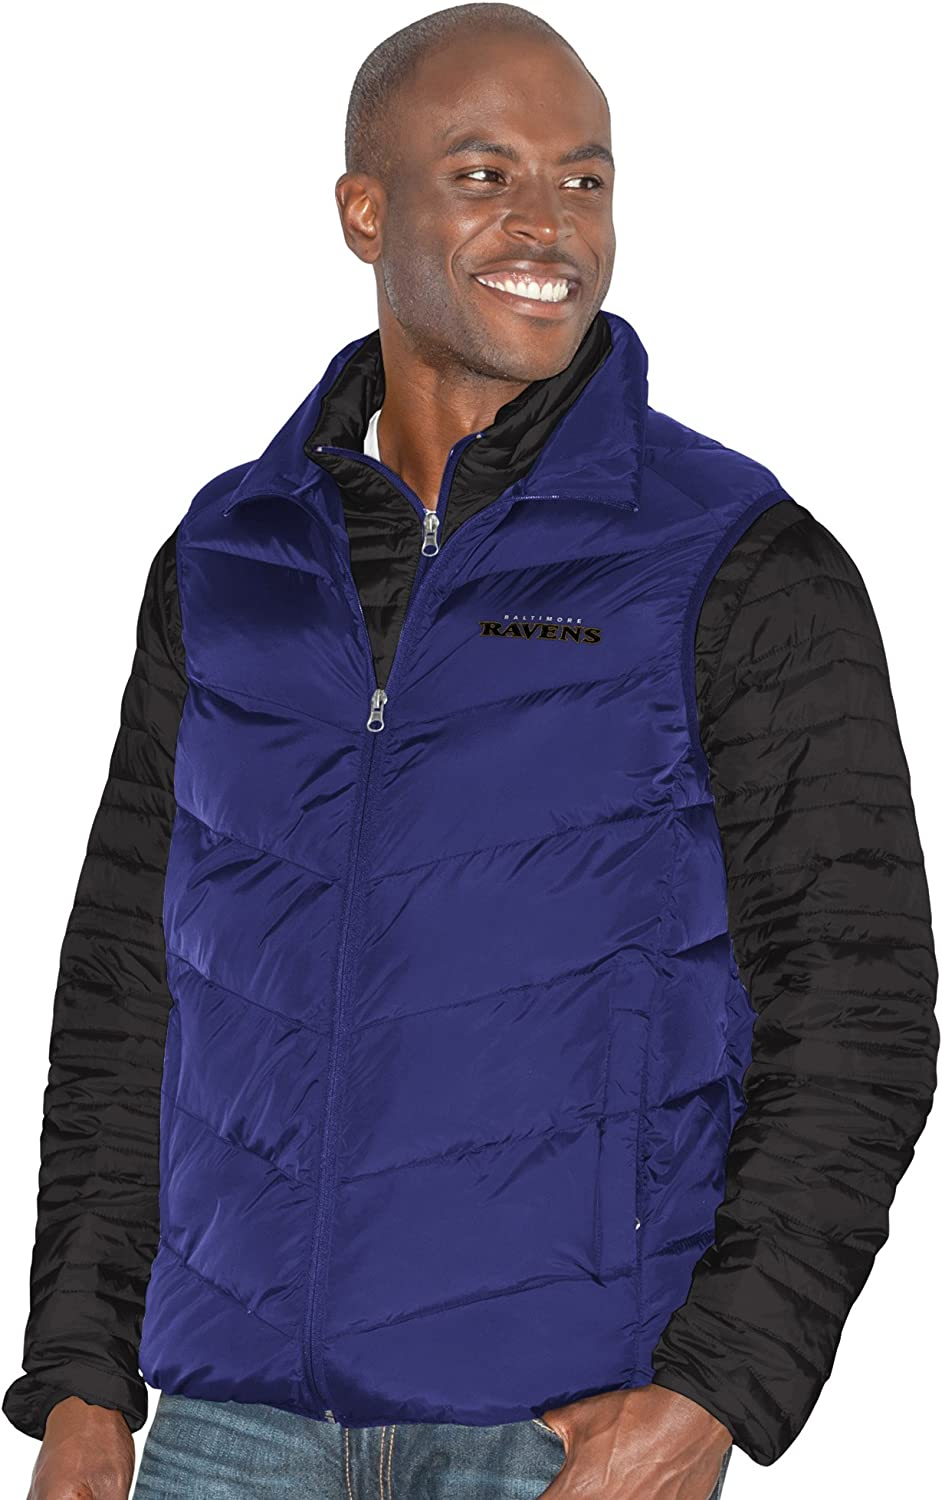 Deluxe G-III Men's New Shipping Free Shipping Three and Systems Jacket 3-in-1 Out